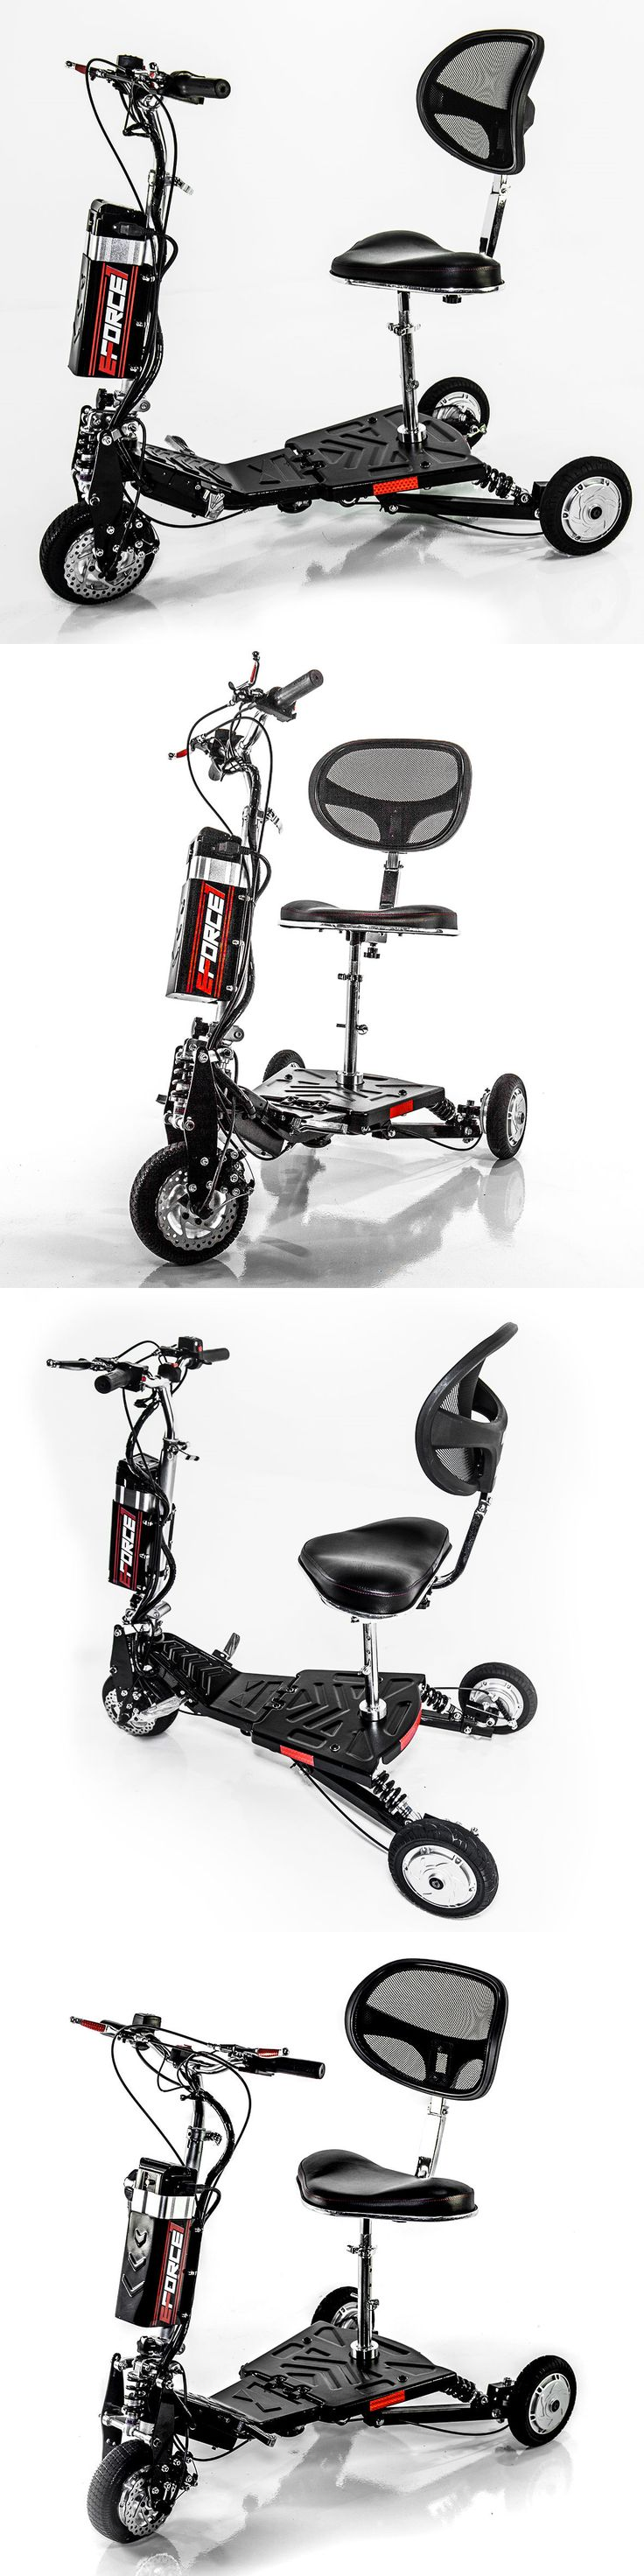 Other Scooters 11329: New Challenger Eforce1 Portable Powerful Recreational Scooter J36v - Speed 12Mph -> BUY IT NOW ONLY: $1695 on eBay!